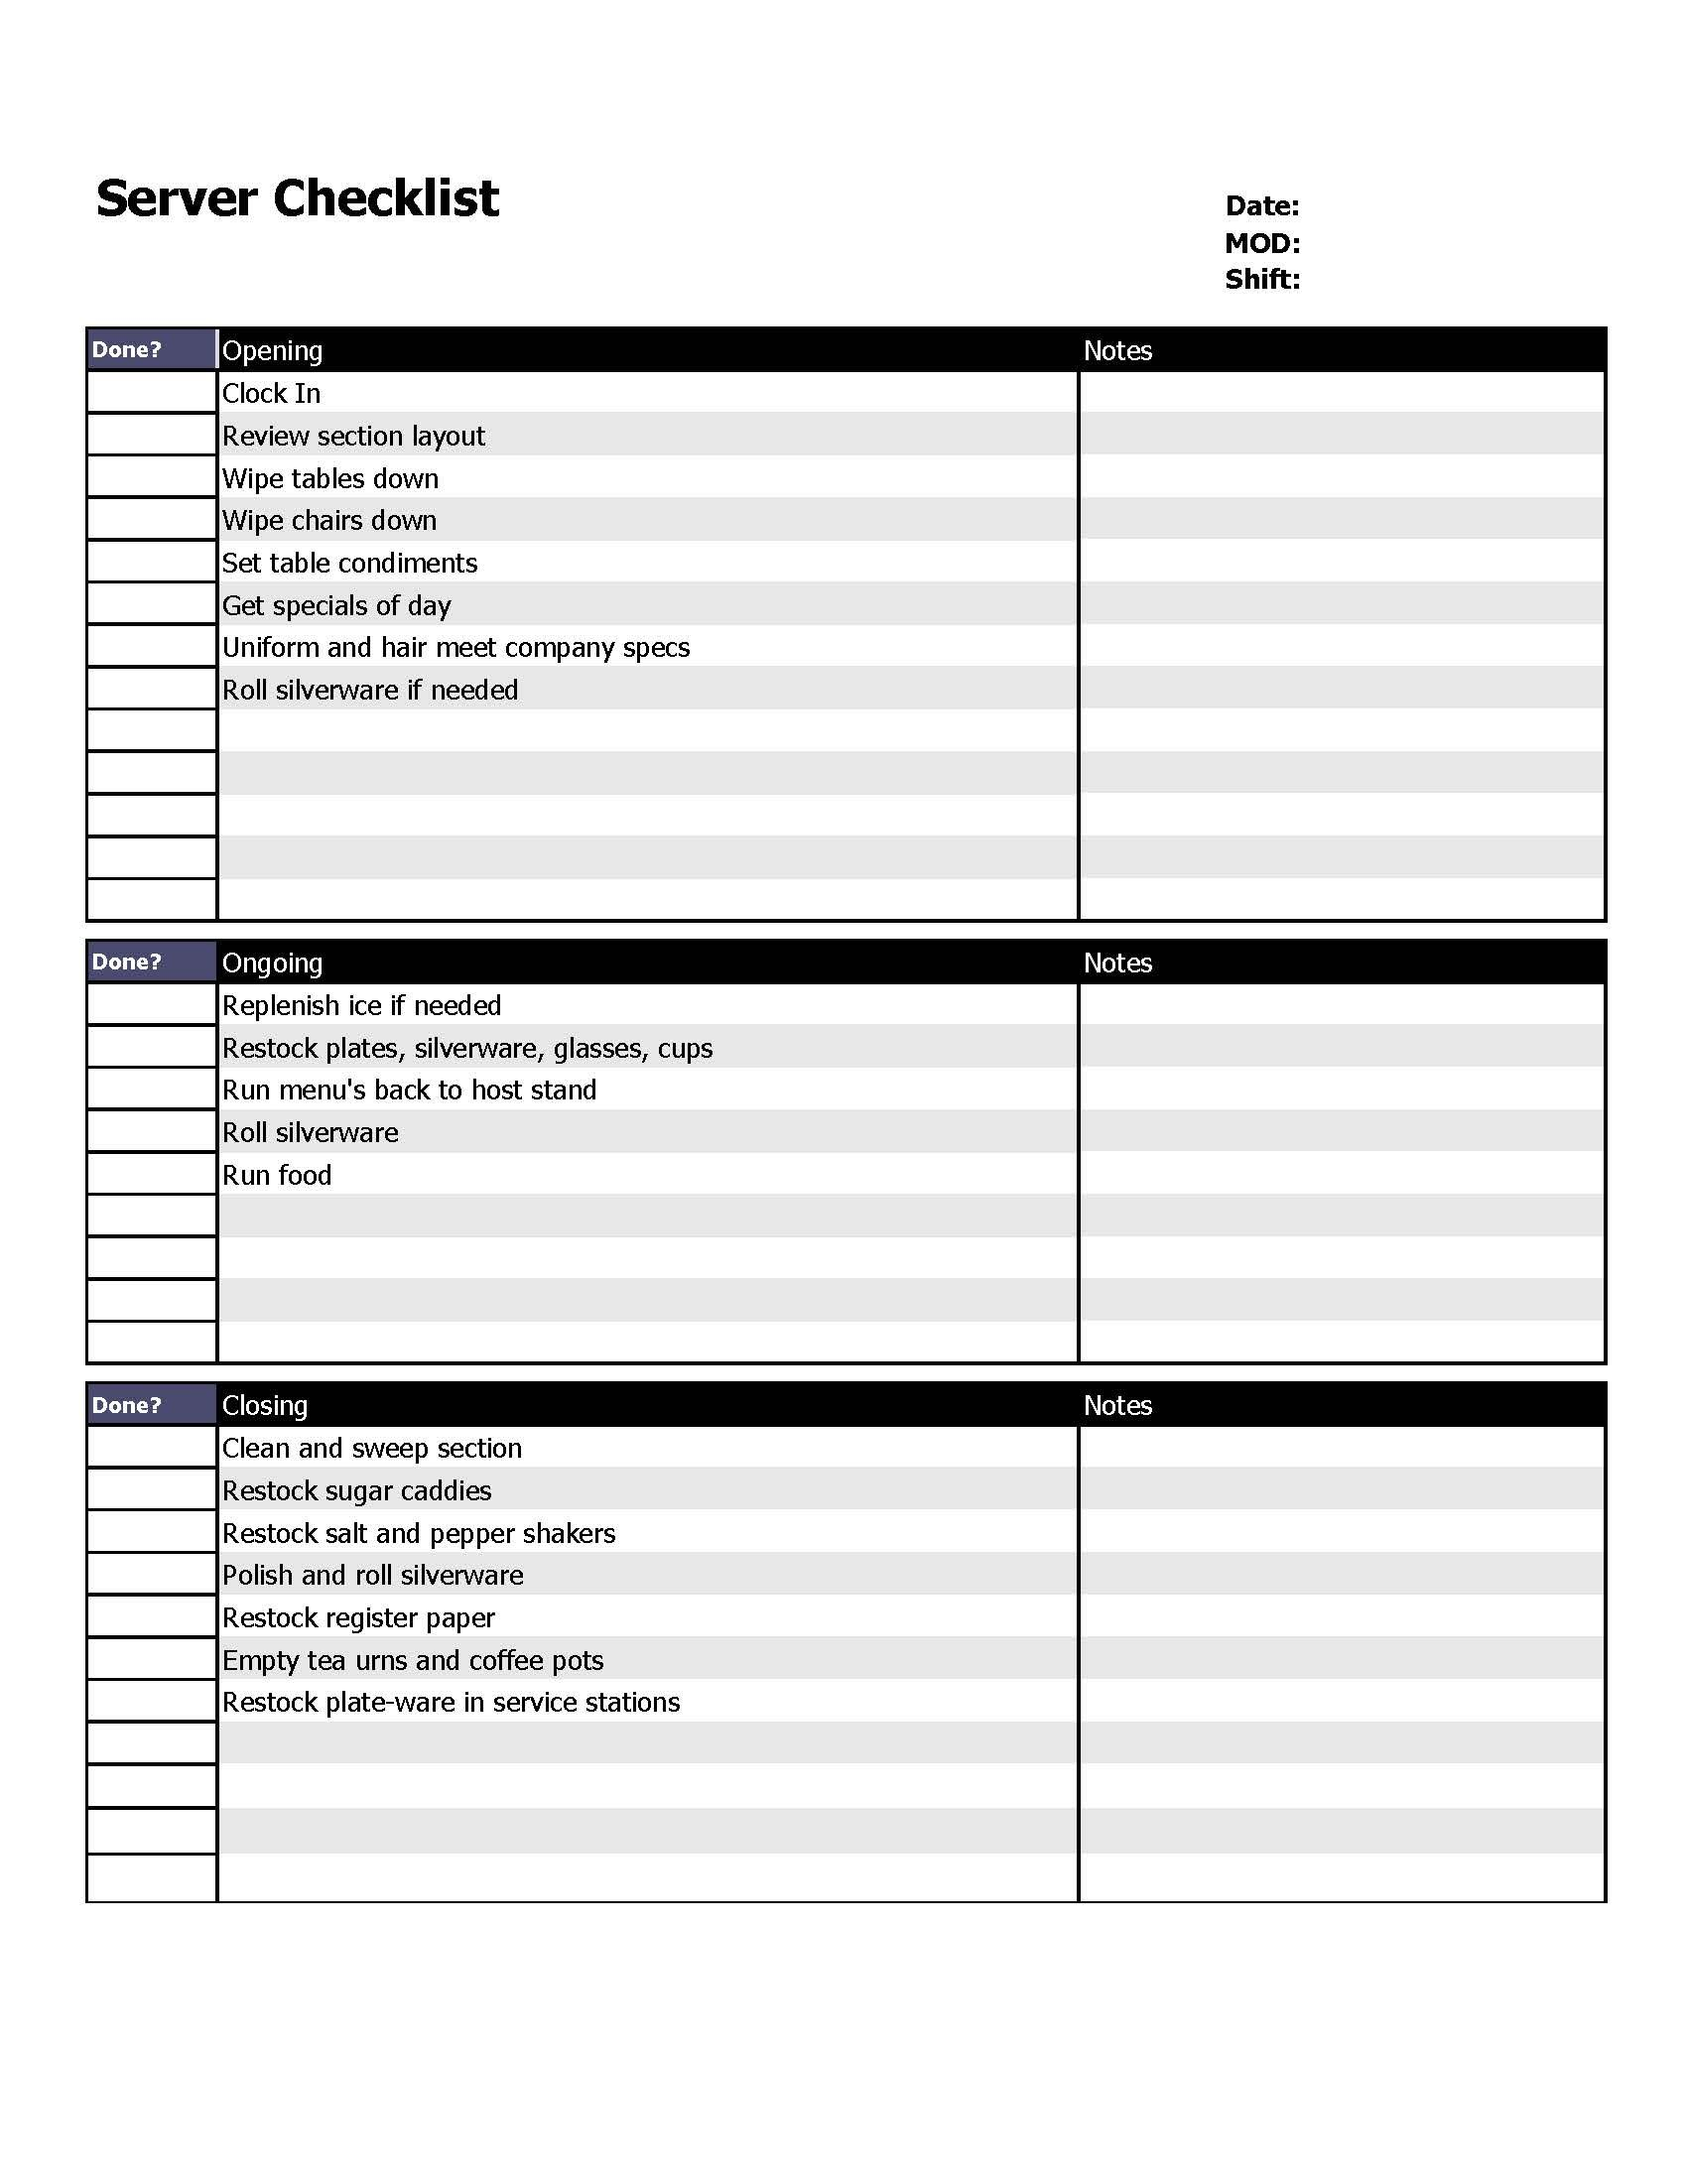 Restaurant Server Checklist Form  Organizing